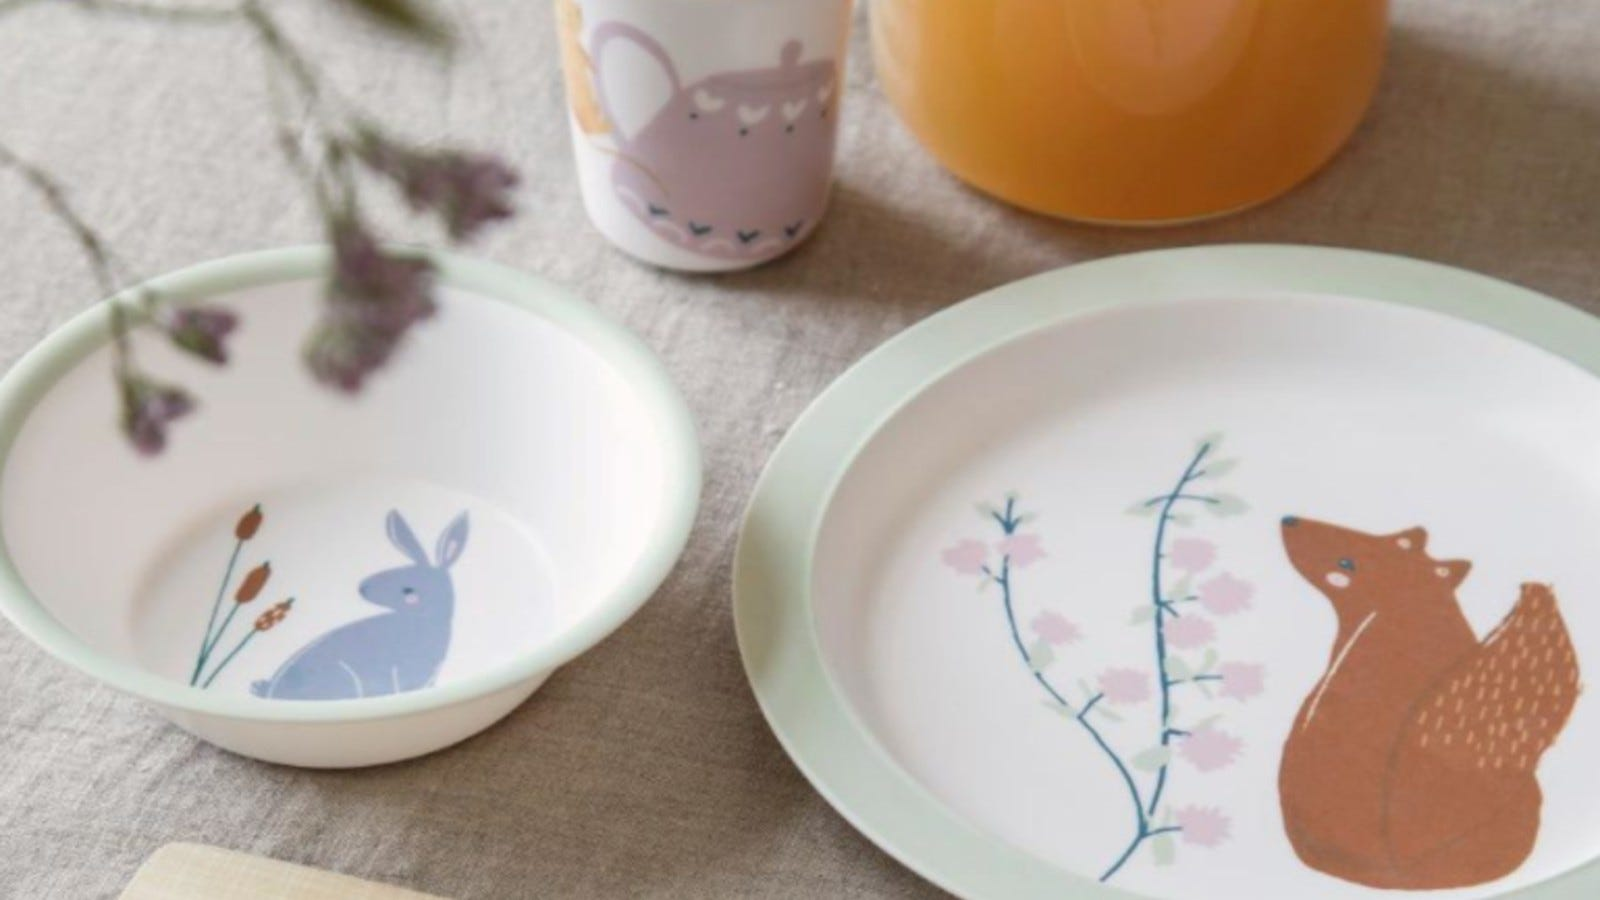 The bowl (featuring a rabbit) and the plate (featuring a squirrel) from the Scandibørn Sebra Tableware Set.